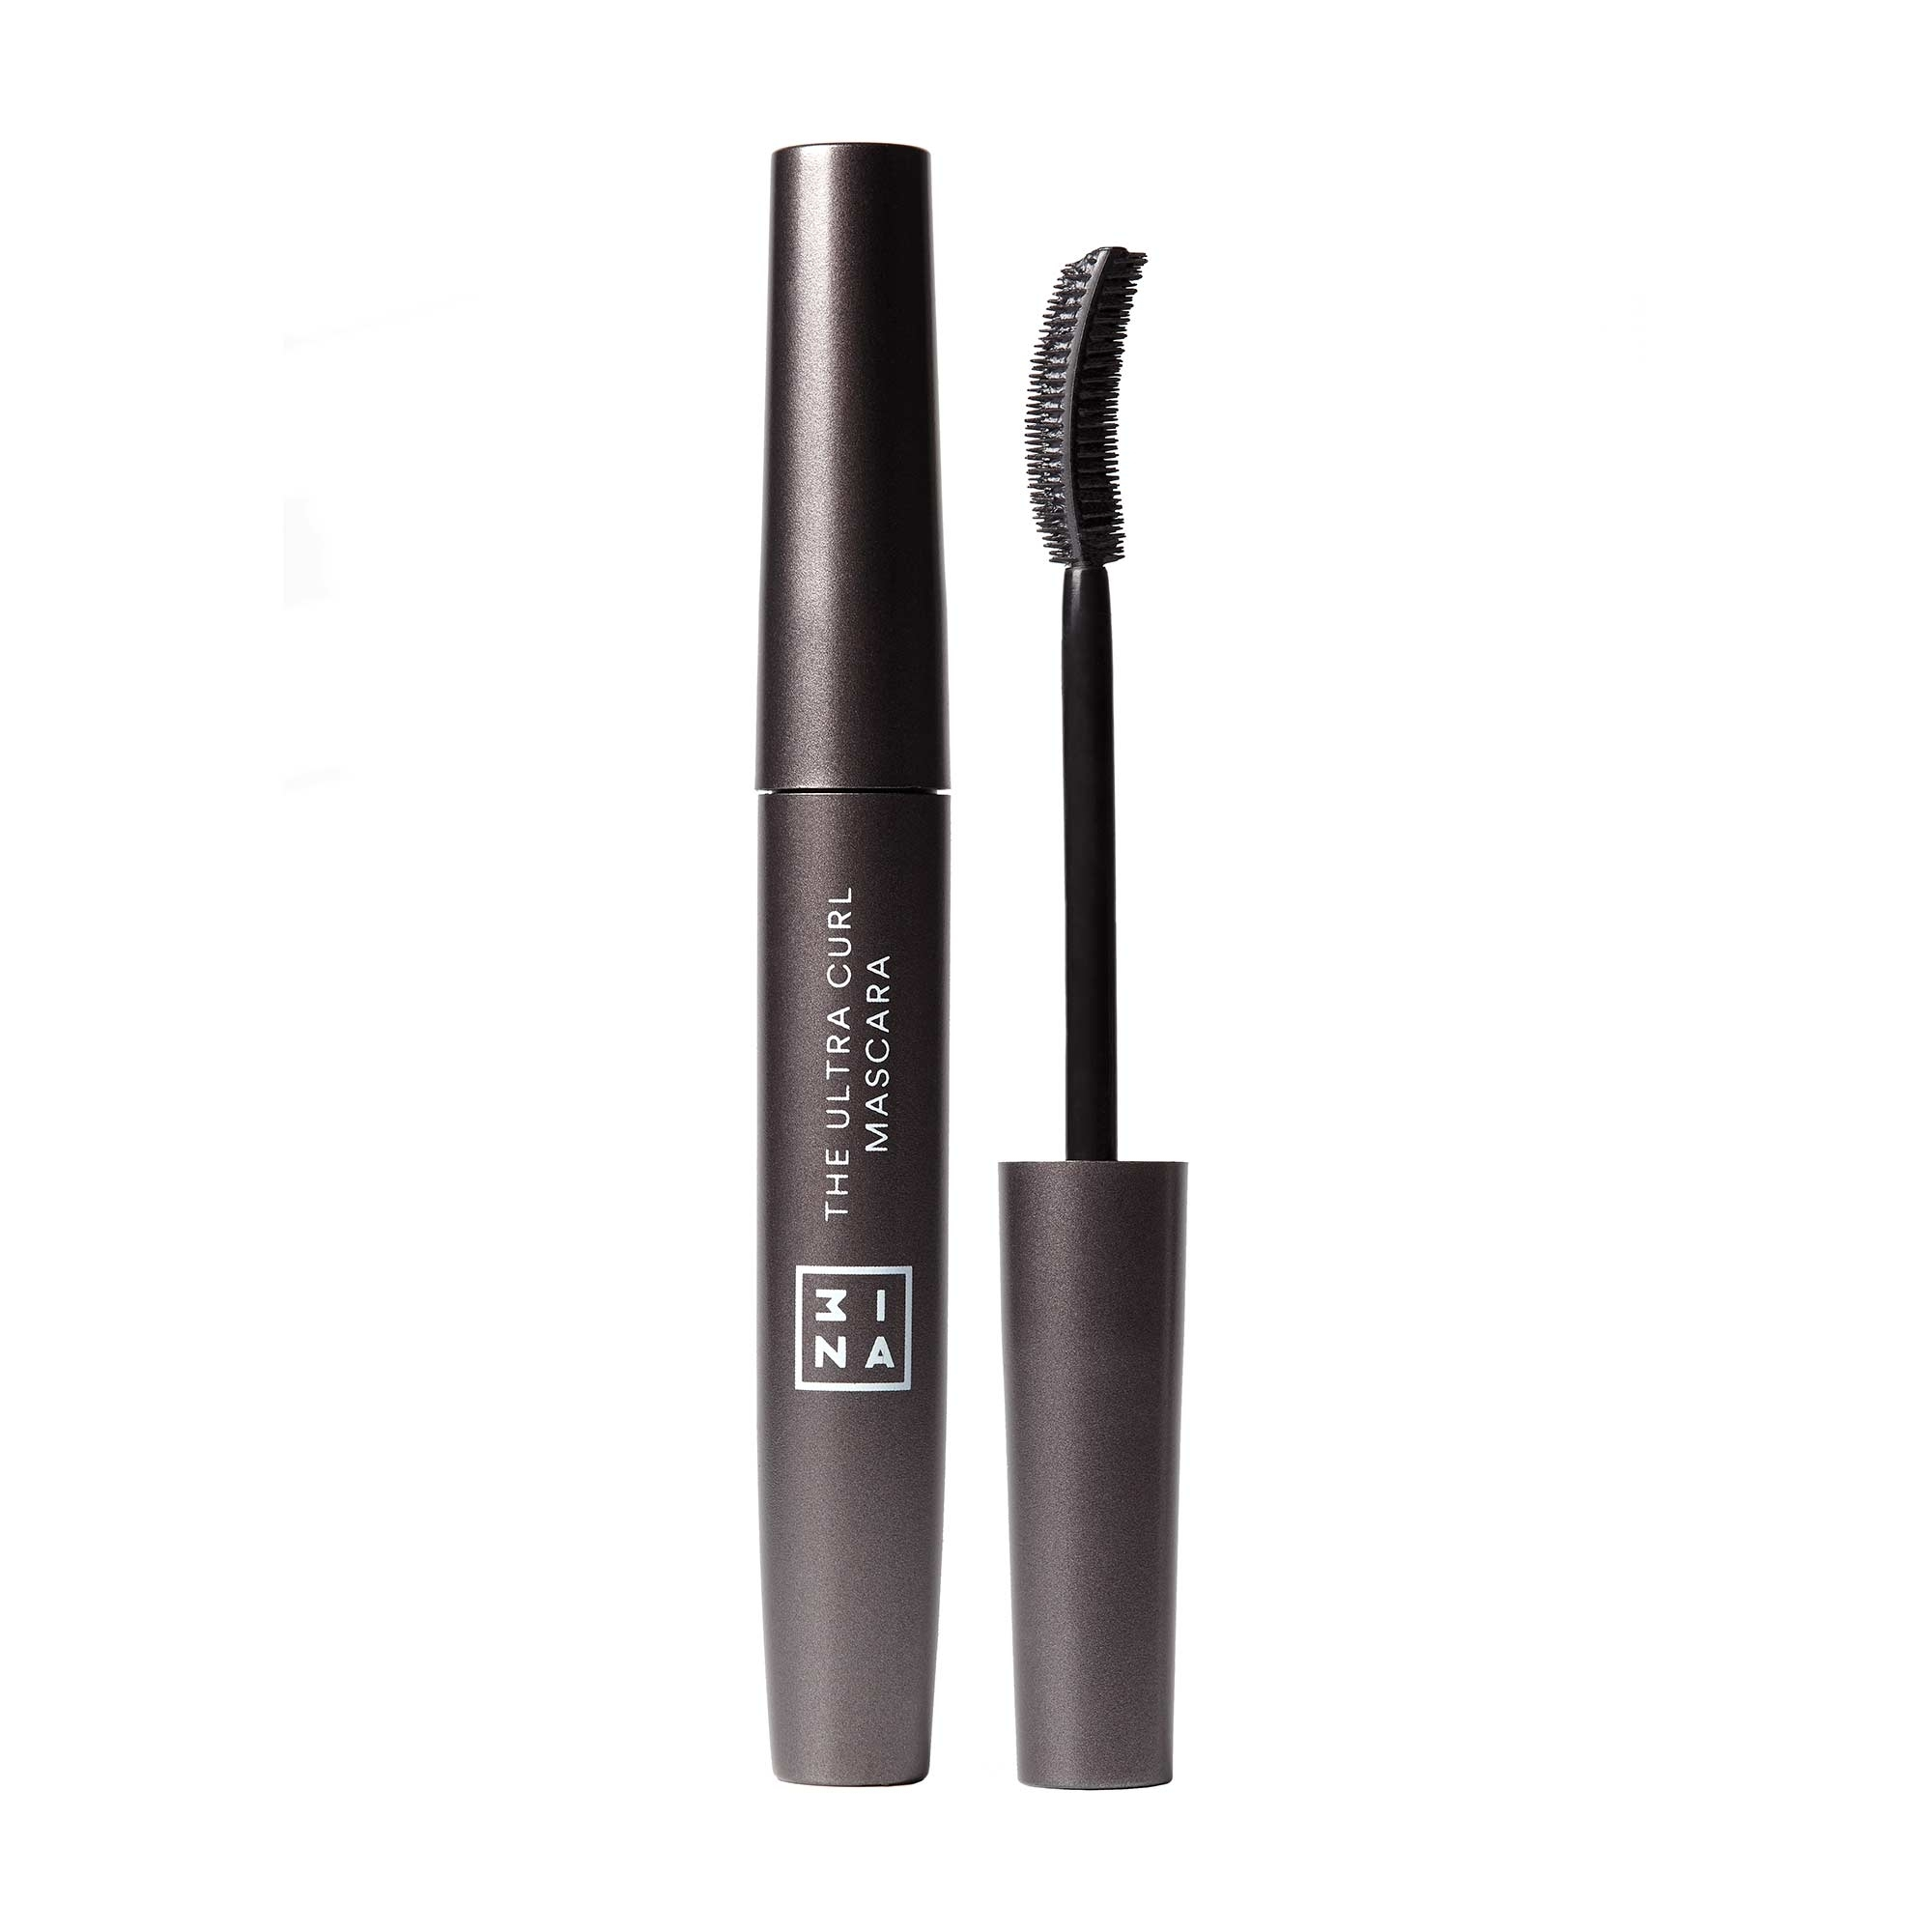 3INA Makeup | The Ultra Curl Mascara Black